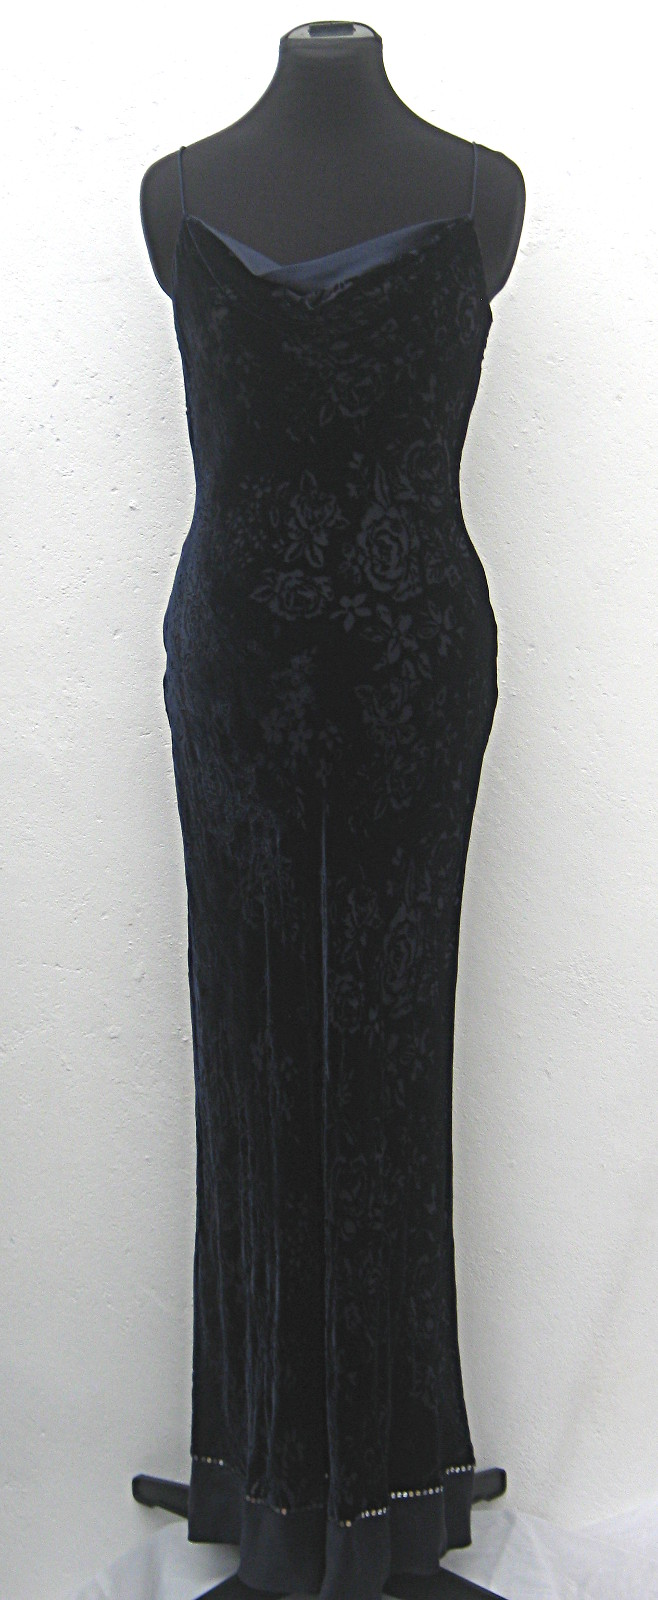 Floor-length-navy-velvet-floral-devoré-strappy-evening-dress